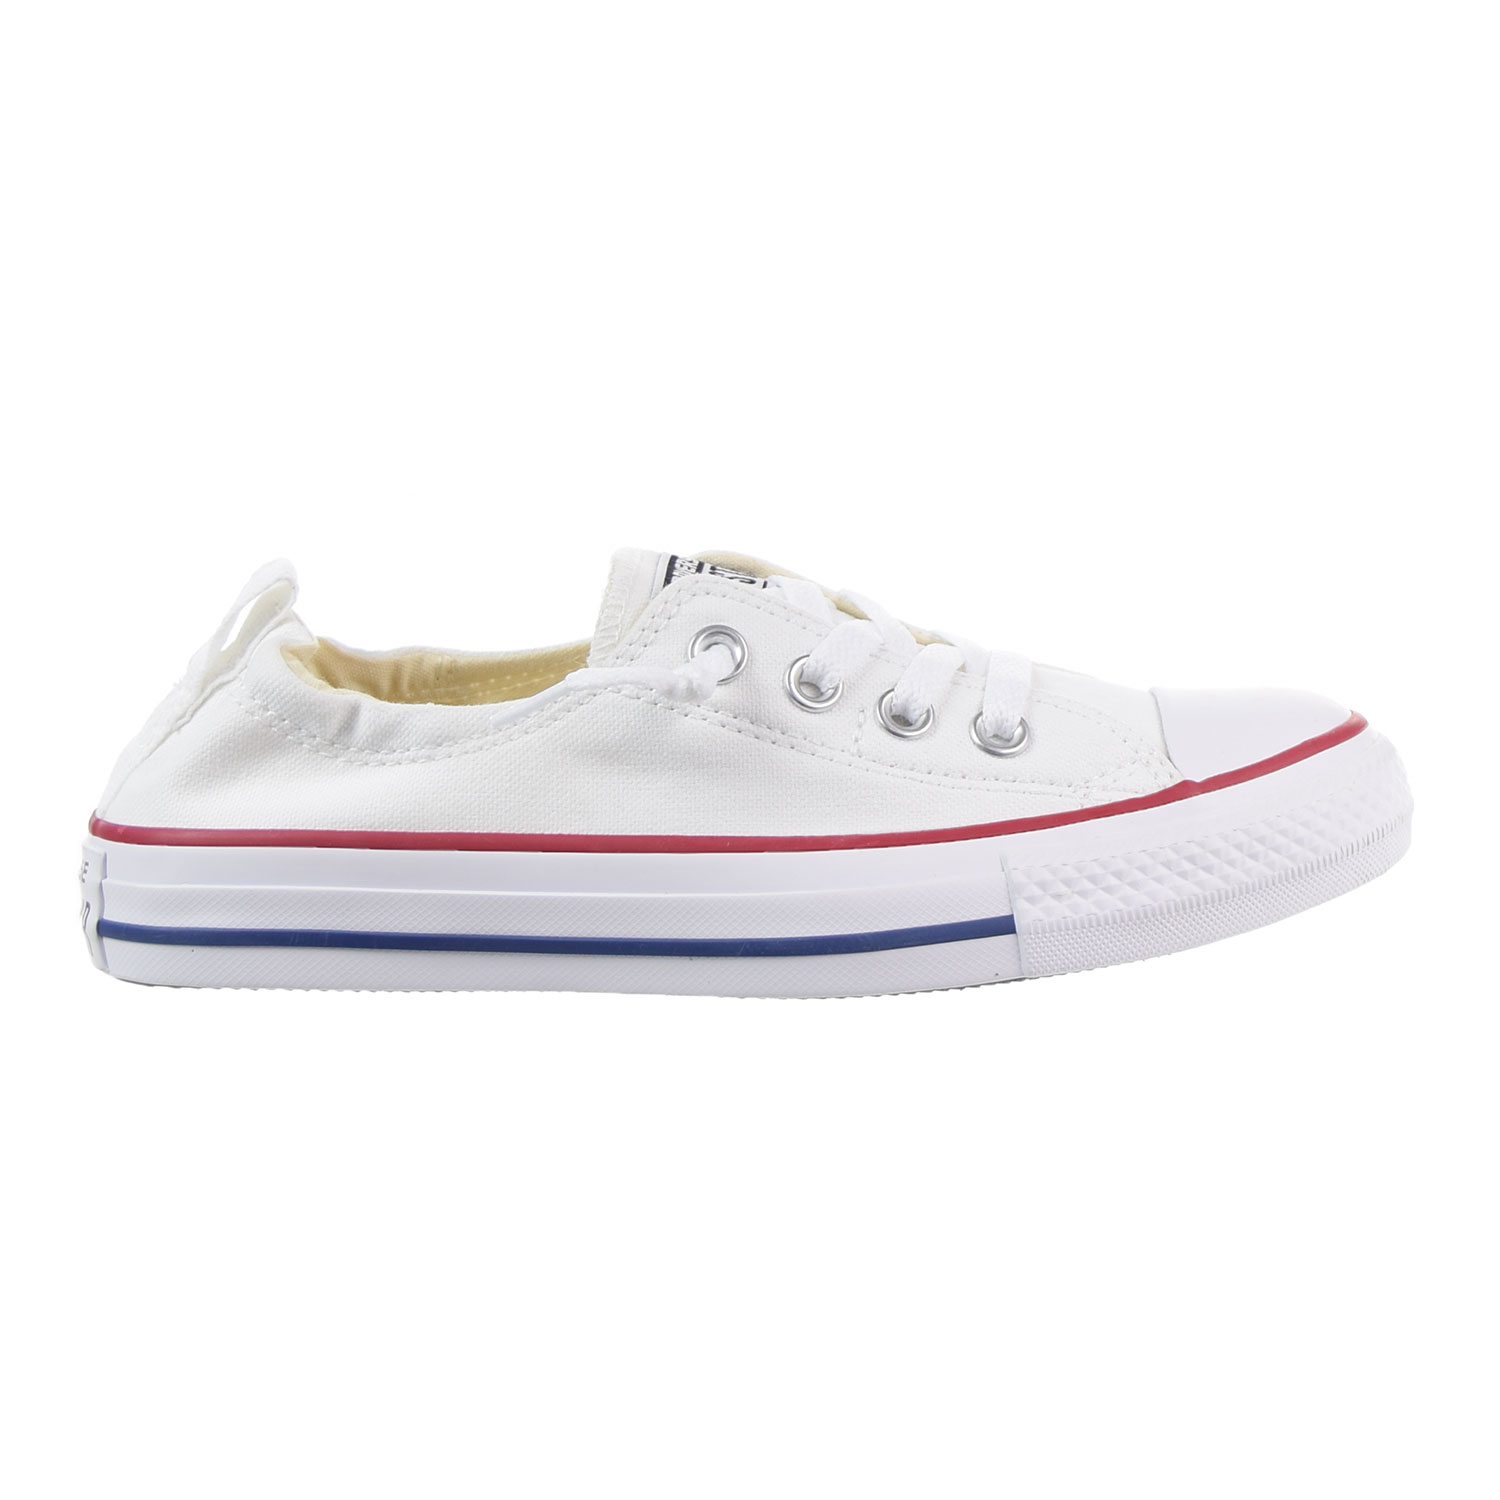 Converse Chuck Taylor All Star Shoreline Womens Slip-On Shoes White 537084f by Converse